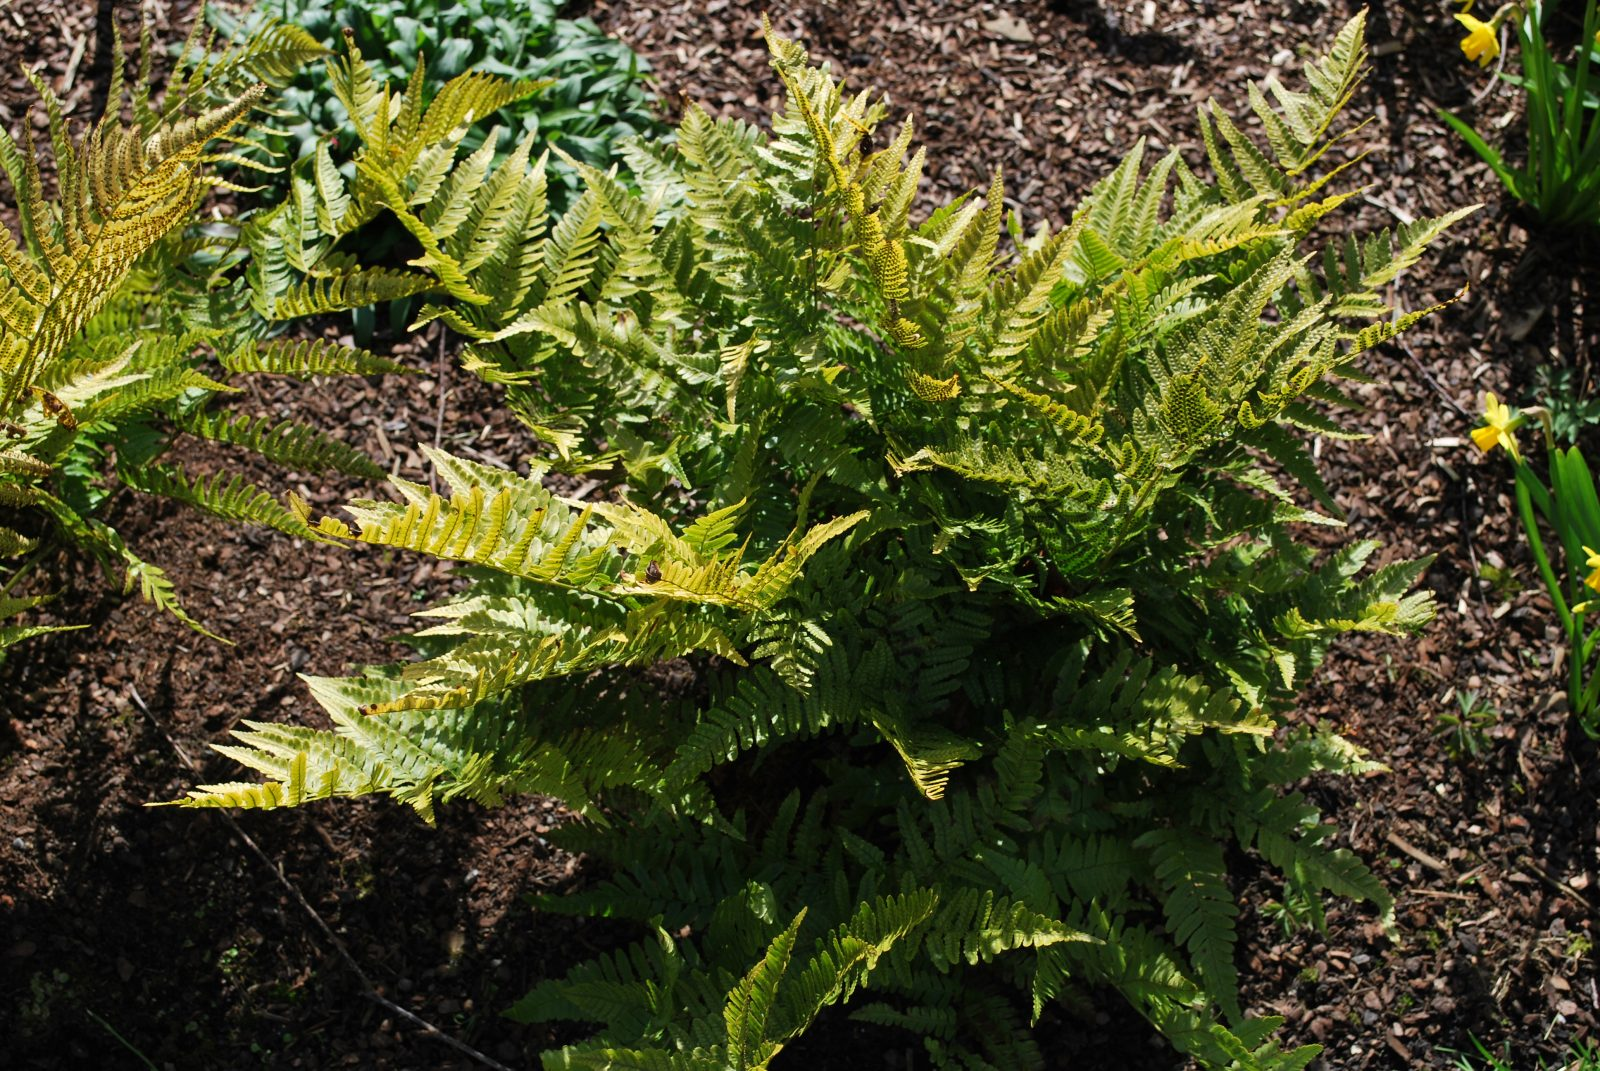 Dryopteris Erthrosora